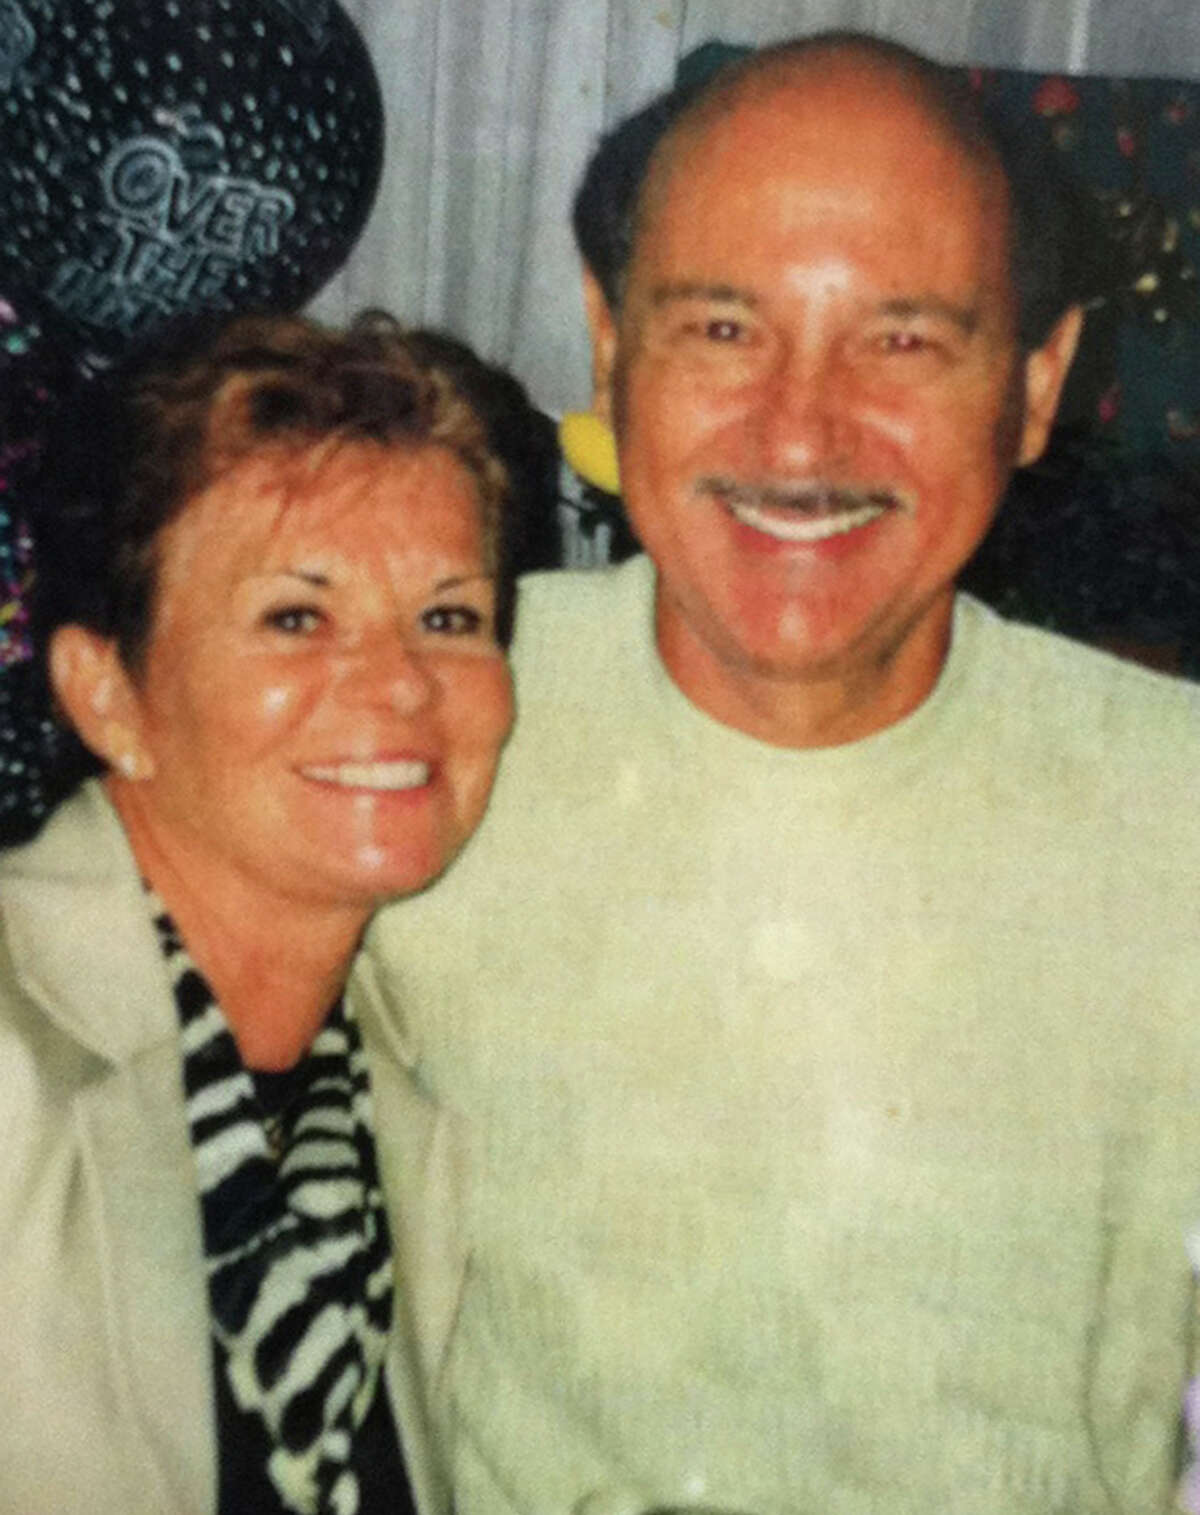 This photo made in 2000 and provided by Barbara Speranza via her attorney, shows Barbara Speranza, left, and her late husband Robert Speranza. Barbara Speranza is seeking damages against Stewart Leonard Sr., founder of Connecticut-based Stew Leonard's grocery store chain, and his son Thomas Leonard, for the death of Robert Speranza, who was swept off Leonard's boat and died in August 2011. A law suit was filed Wednesday March 7, 2012 in Bridgeport, Conn., Superior Court.